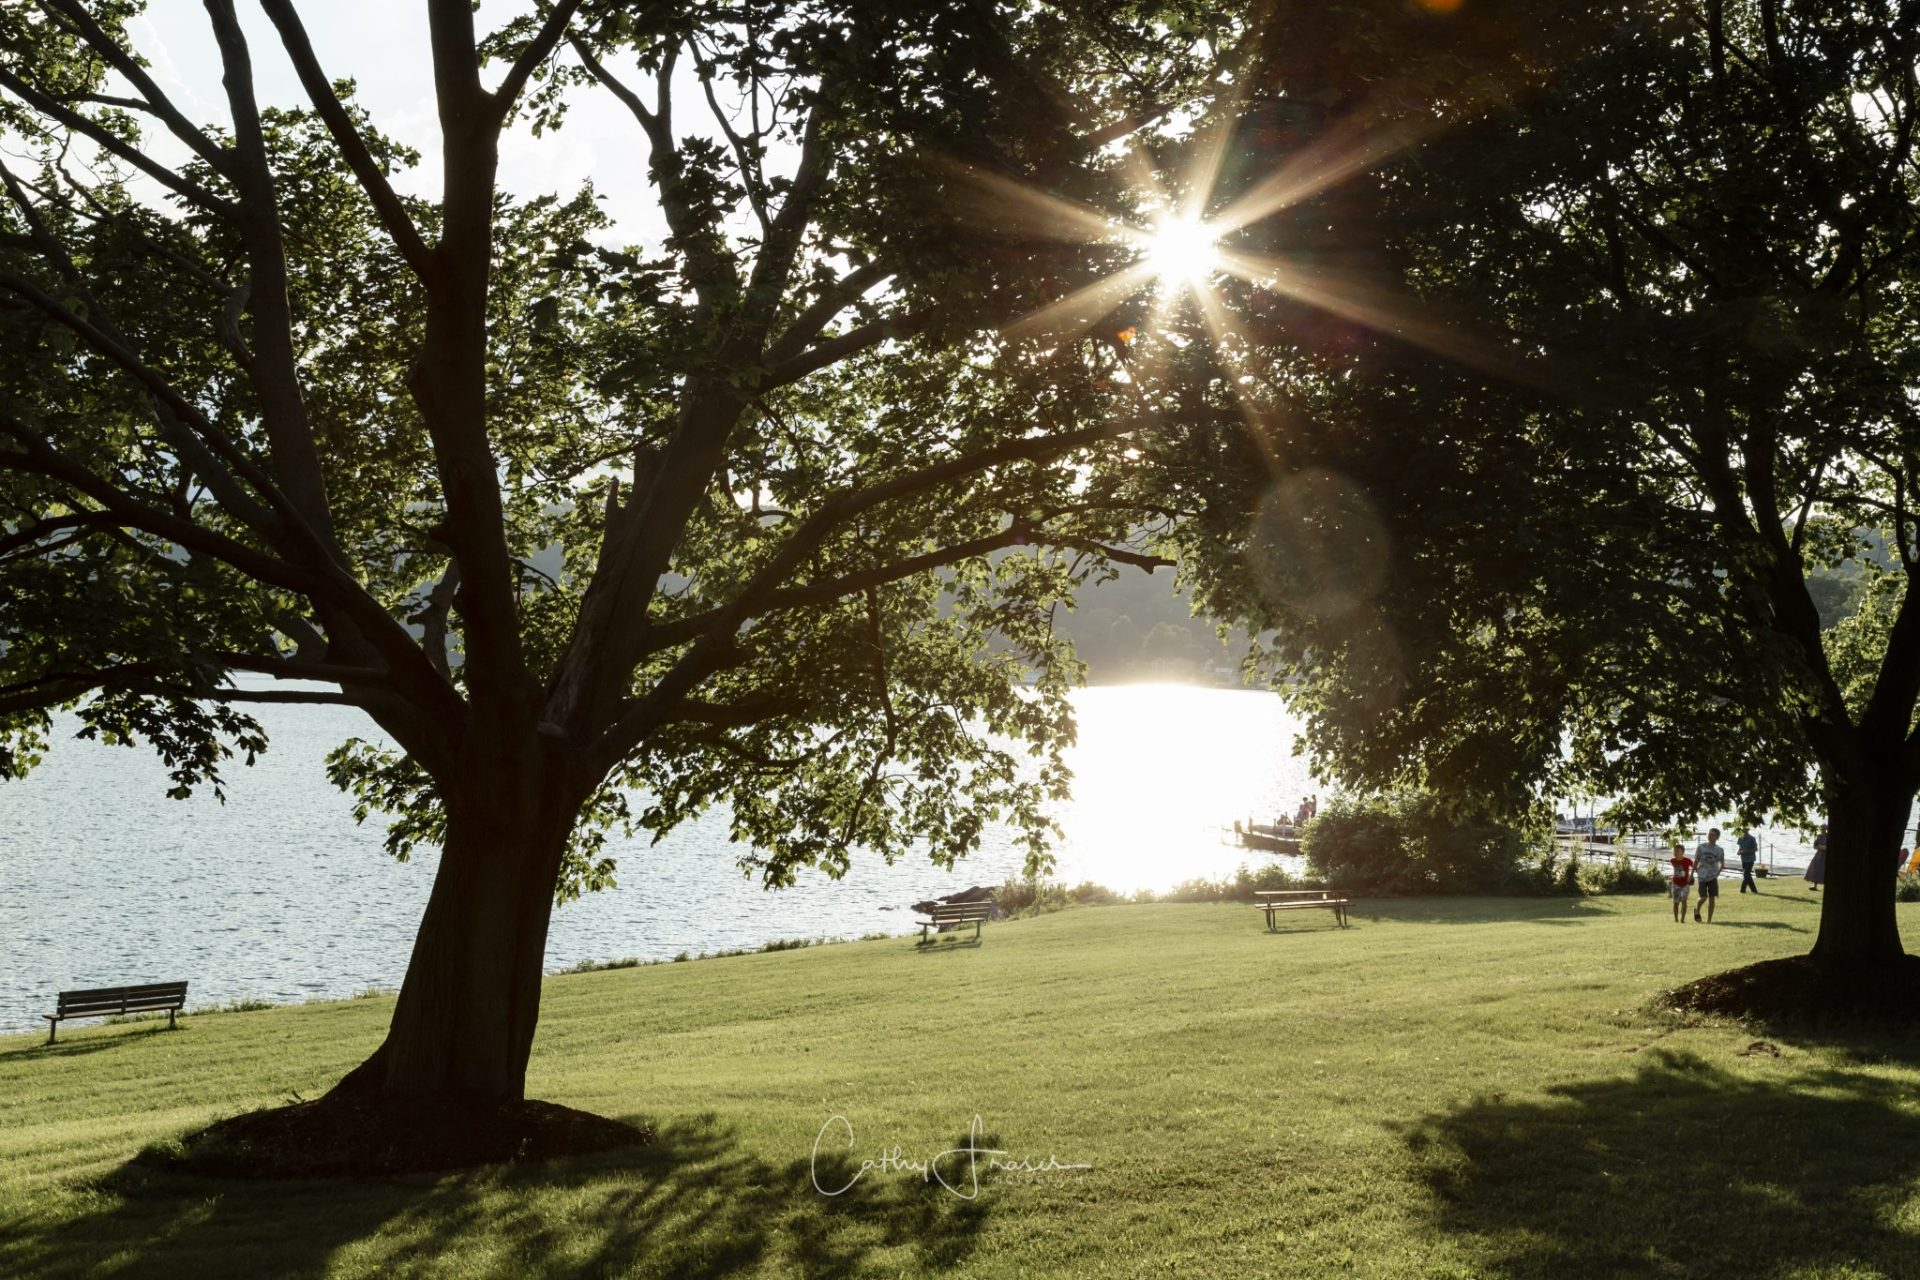 Landscape photography of a park in front of a lake in new york